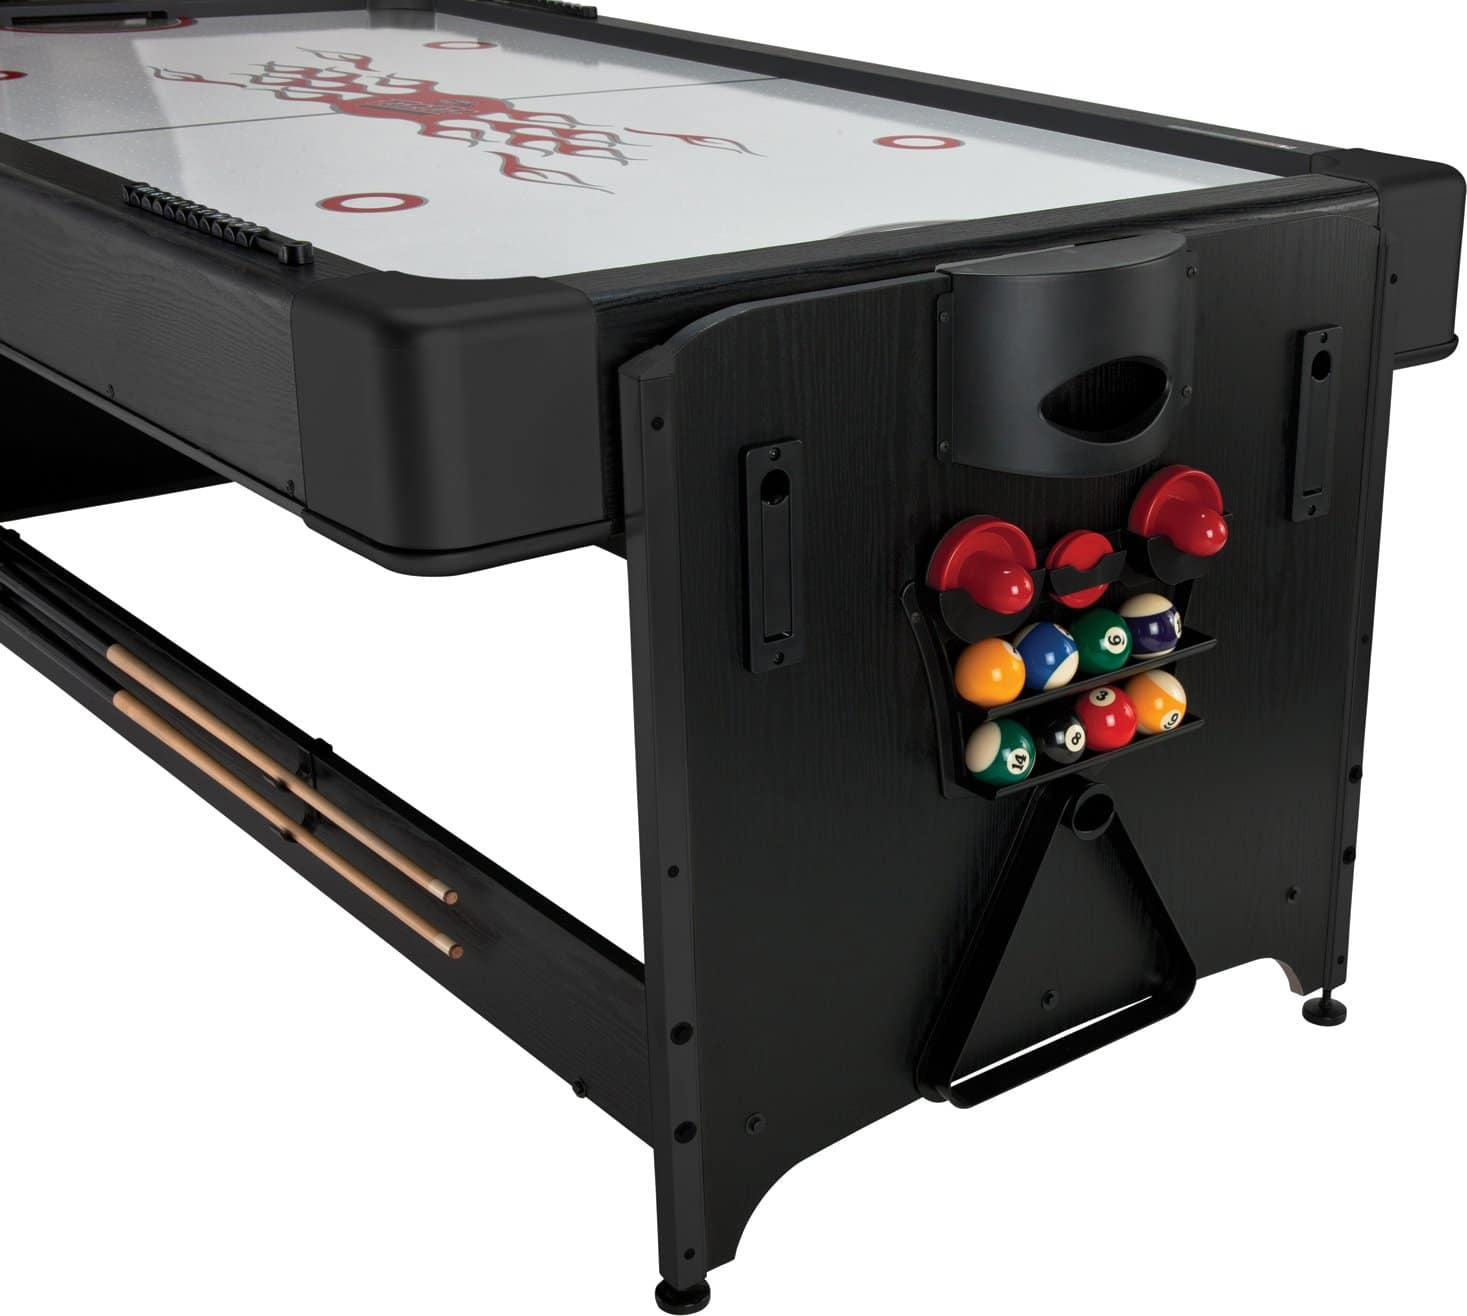 5 Best Pool Table Ping Pong Combo Reviewed In Detail Jan